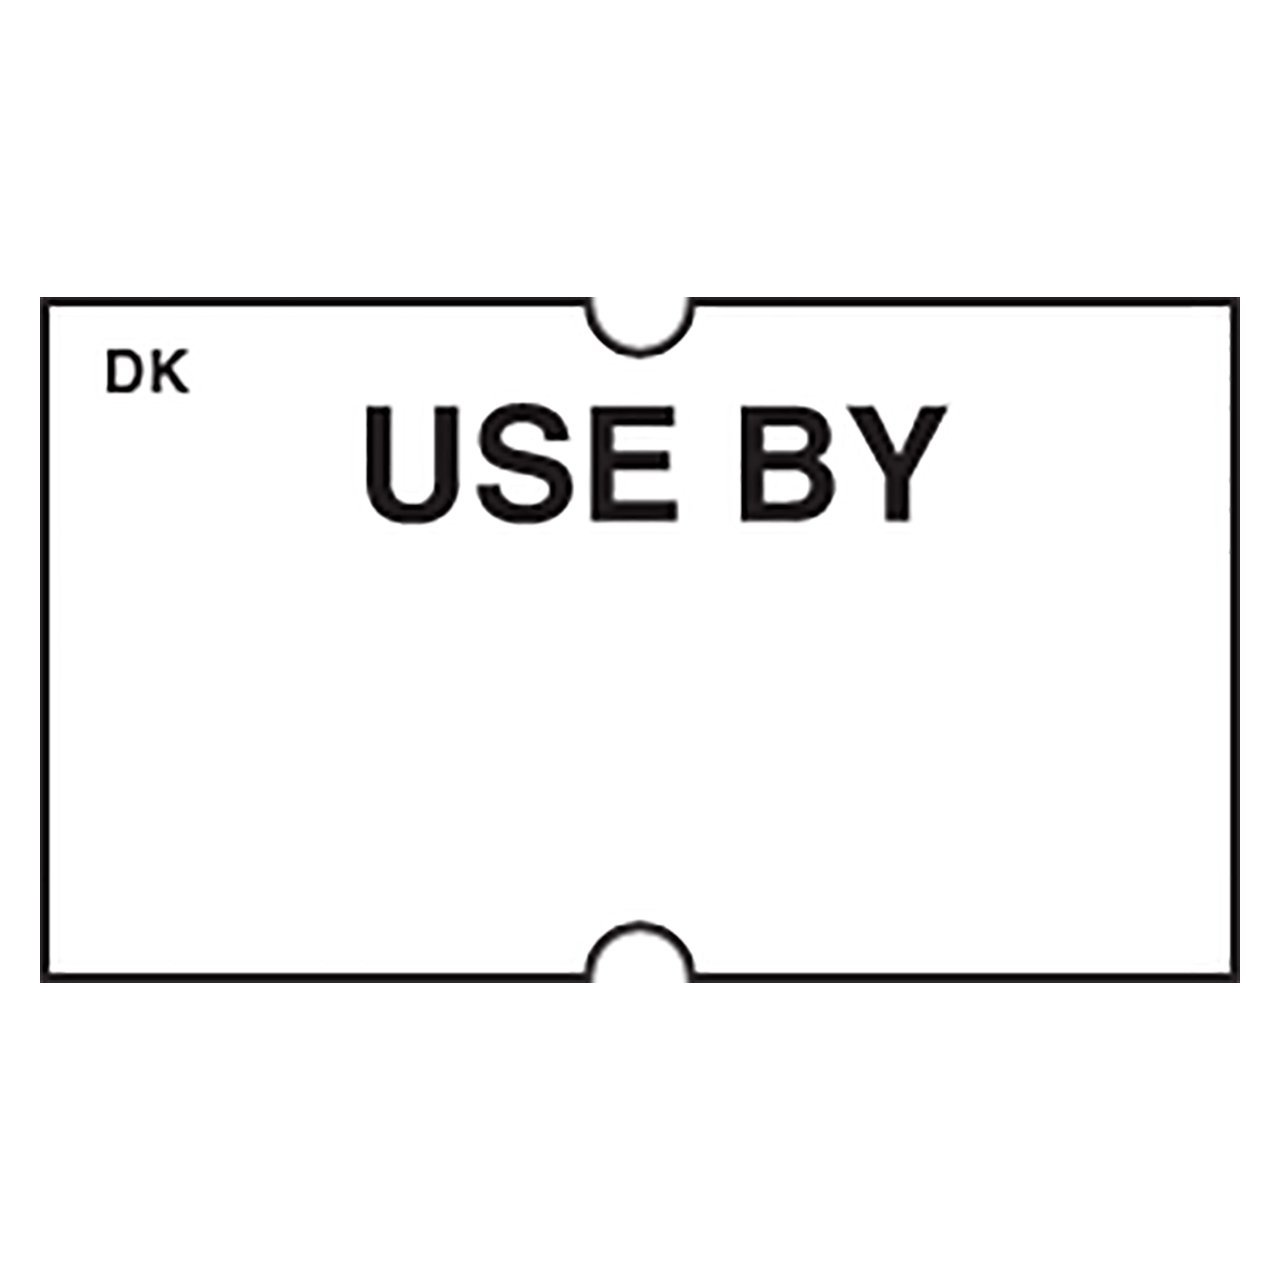 "DayMark Date Coder Permanent""USE BY"" Label, For DM3 SpeedyMark 10 1-Line Marking Gun, White (8,000 Labels)"